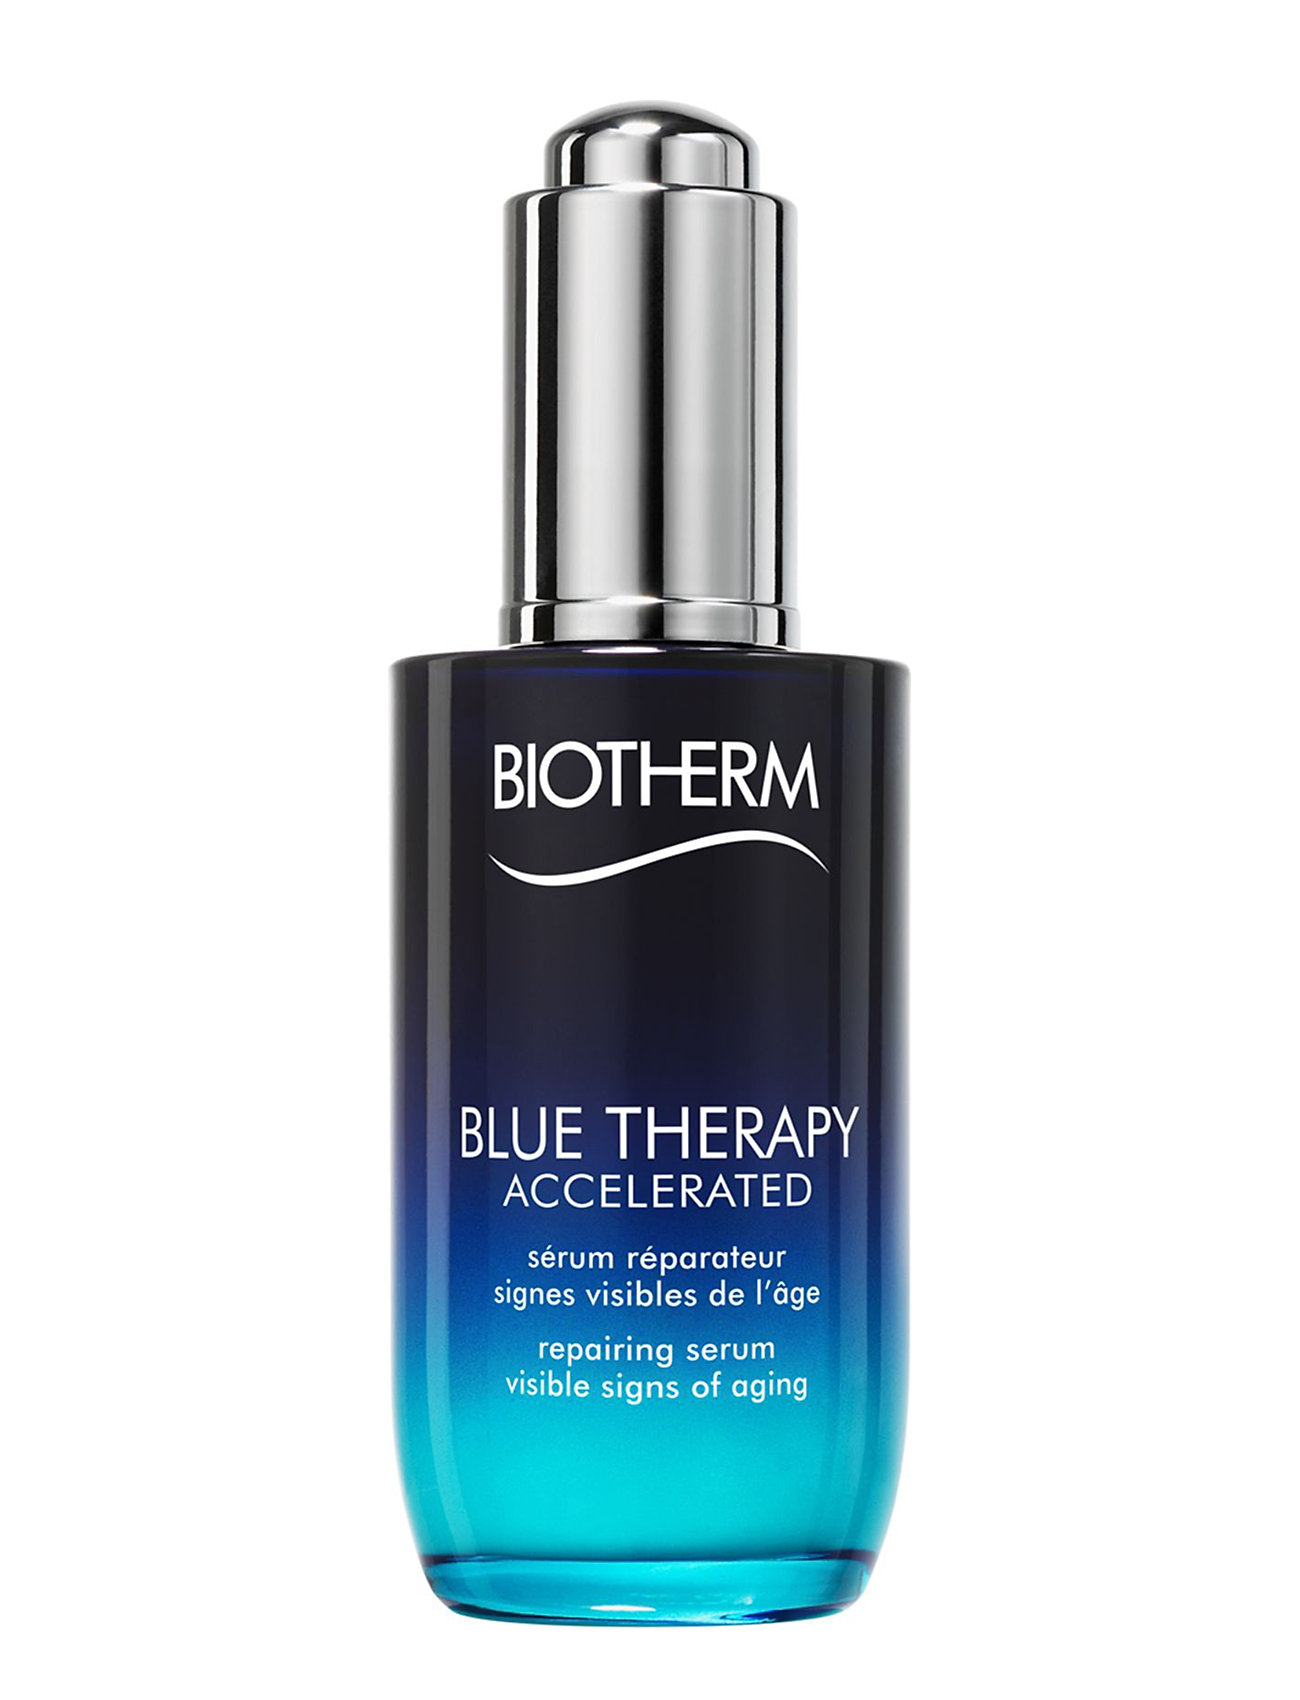 biotherm Blue therapy accelerated serum 30 ml på boozt.com dk